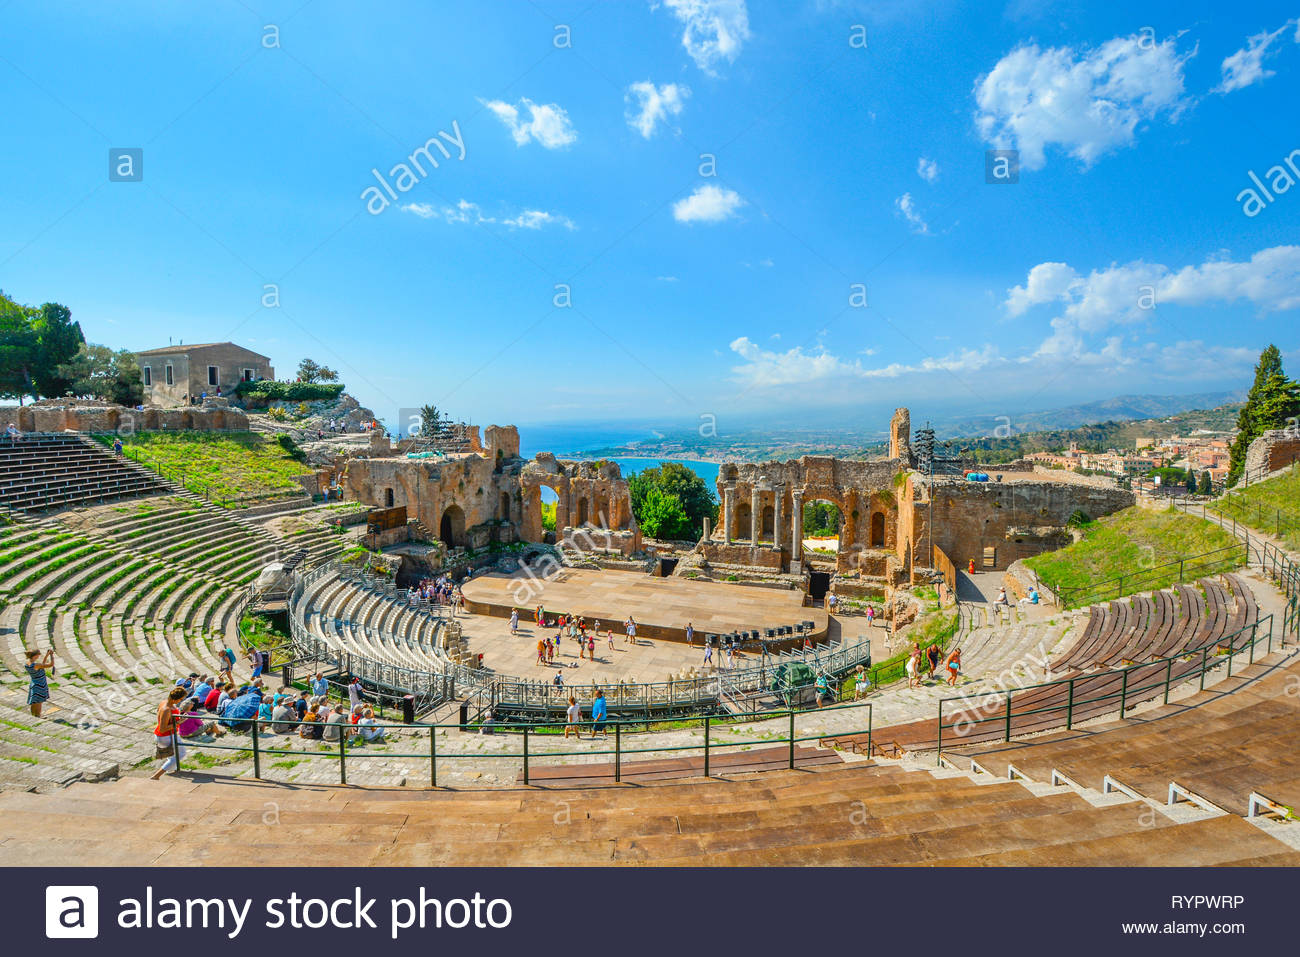 Tourists enjoy a summer afternoon at the ancient Greek Theatre on the Sicily at the resort city of Taormina, Italy. Stock Photo